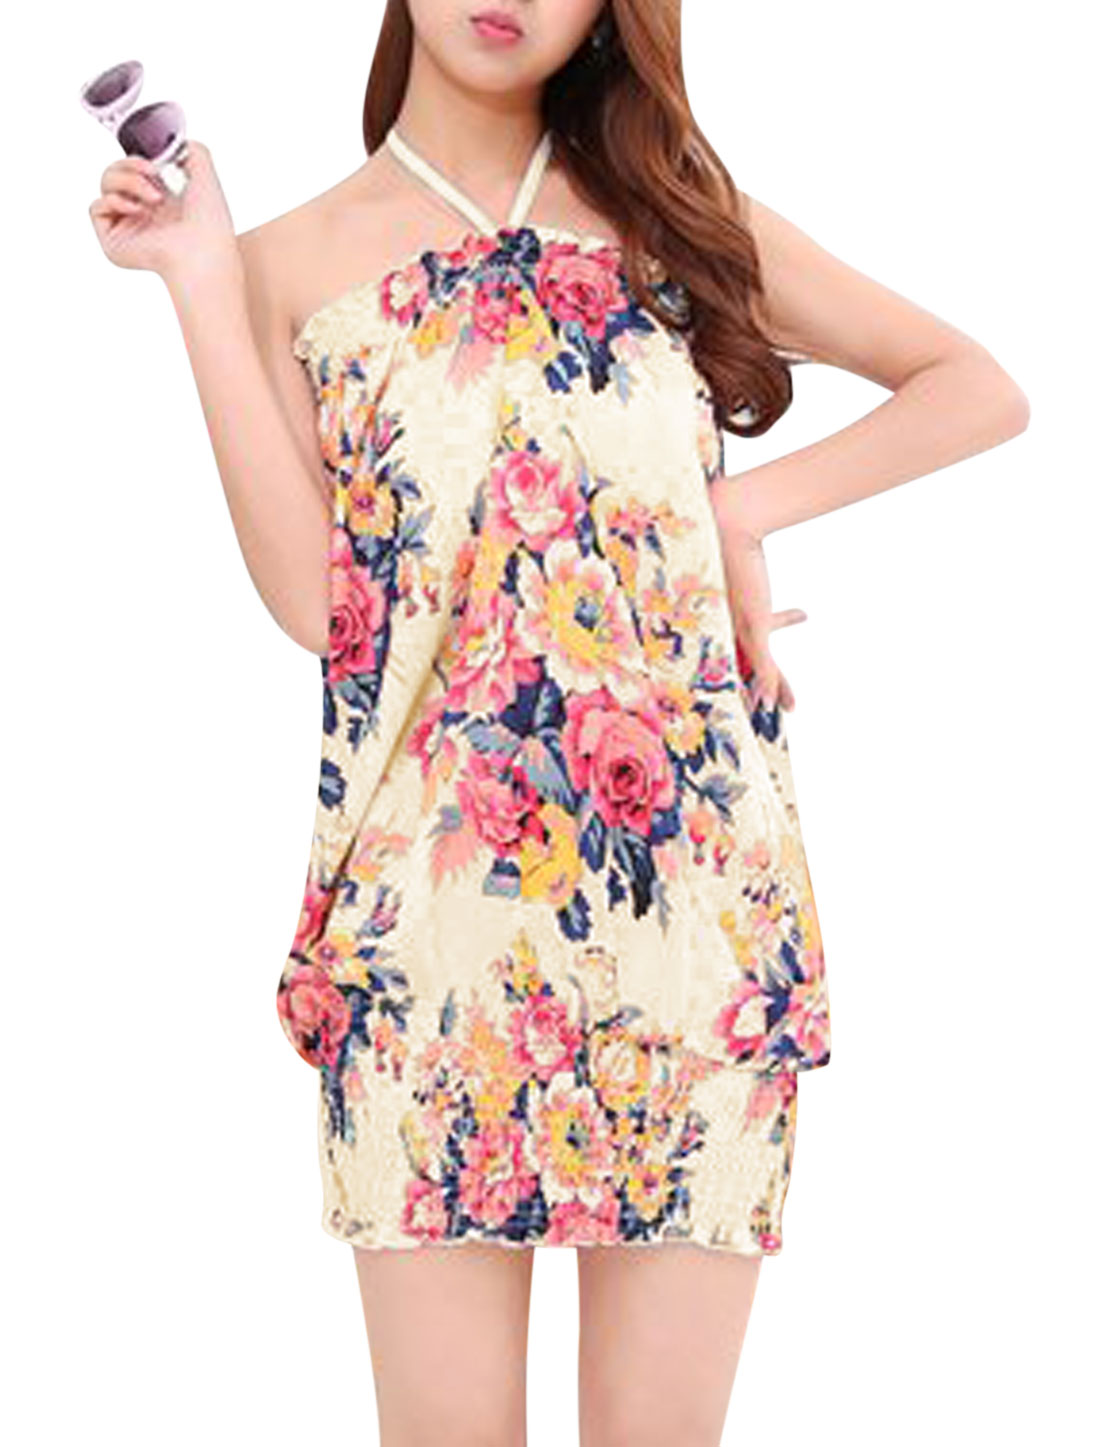 Women Halter Neck Sleeveless Floral Print Ruched Summer Dresses Beige Fuchsia S